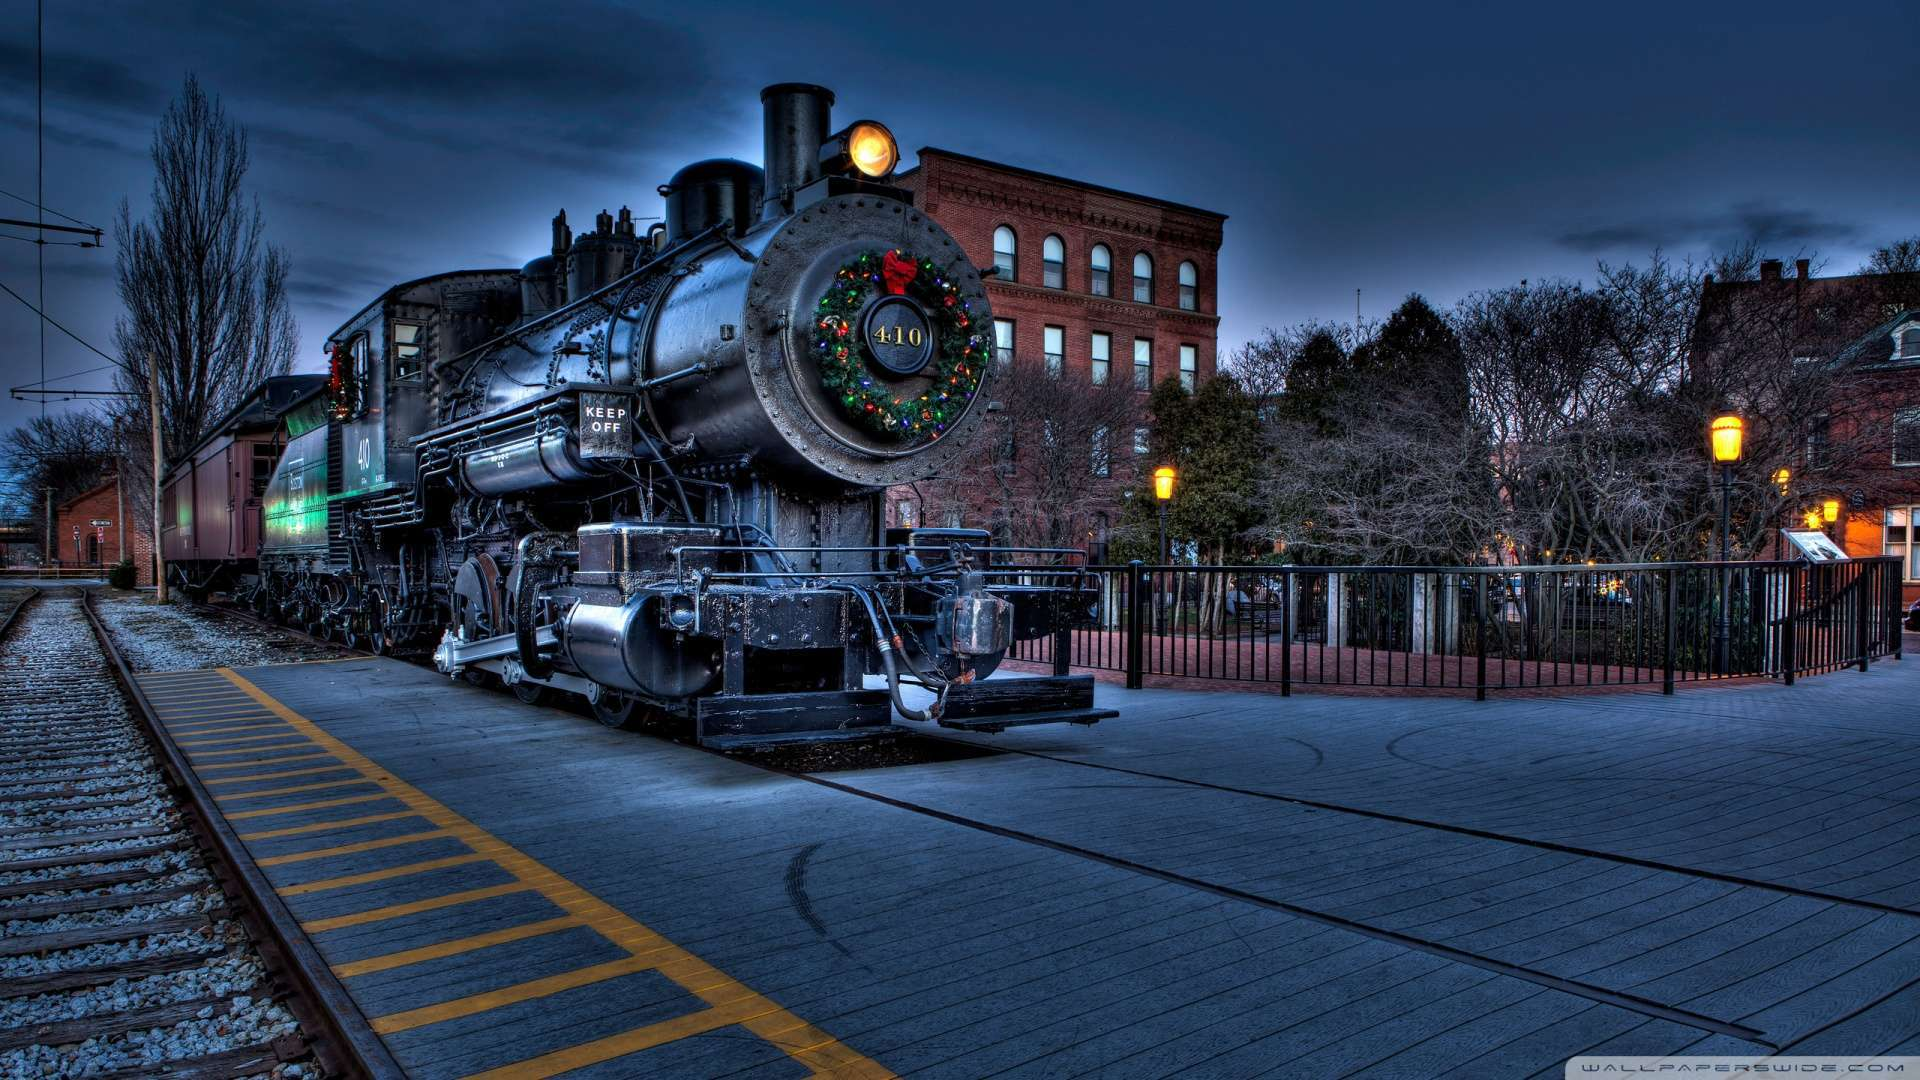 Wallpaper Christmas City Locomotive Railway Wallpaper 1080p HD 1920x1080